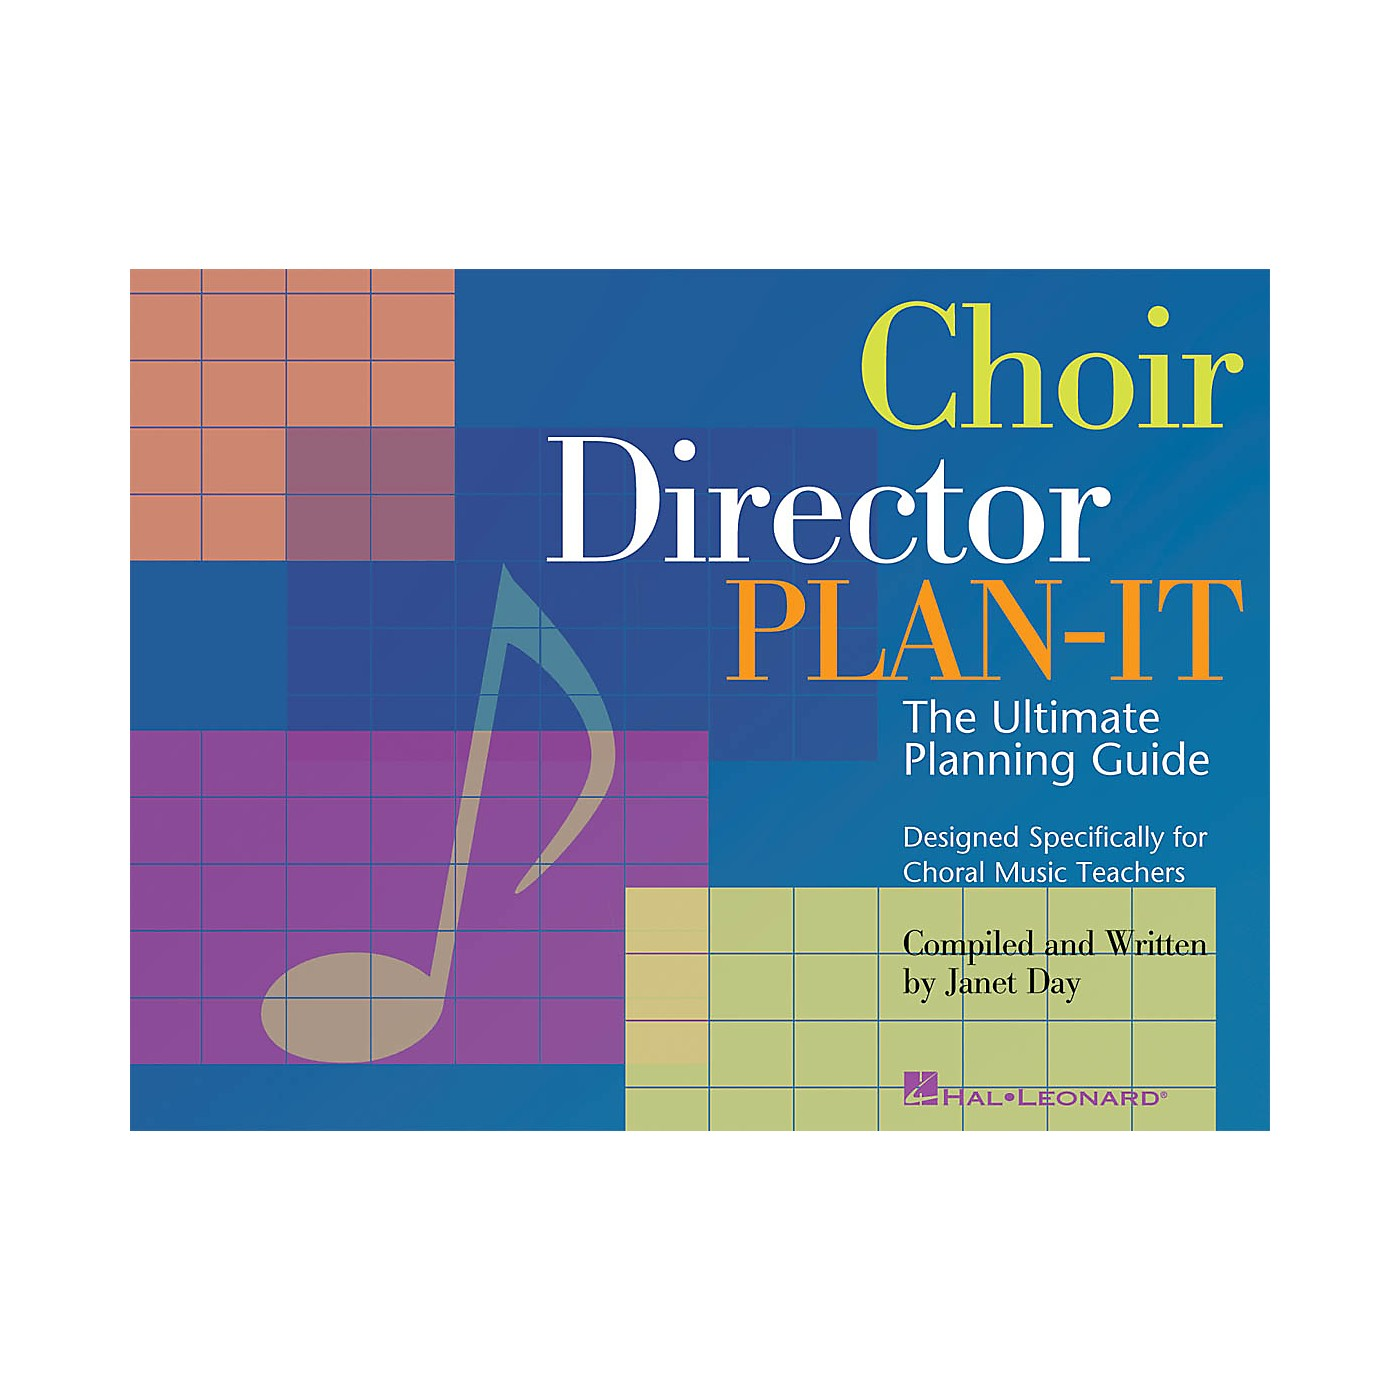 Hal Leonard Choir Director Plan-It (The Ultimate Planning Guide for Choral Music Teachers) RESOURCE BK thumbnail